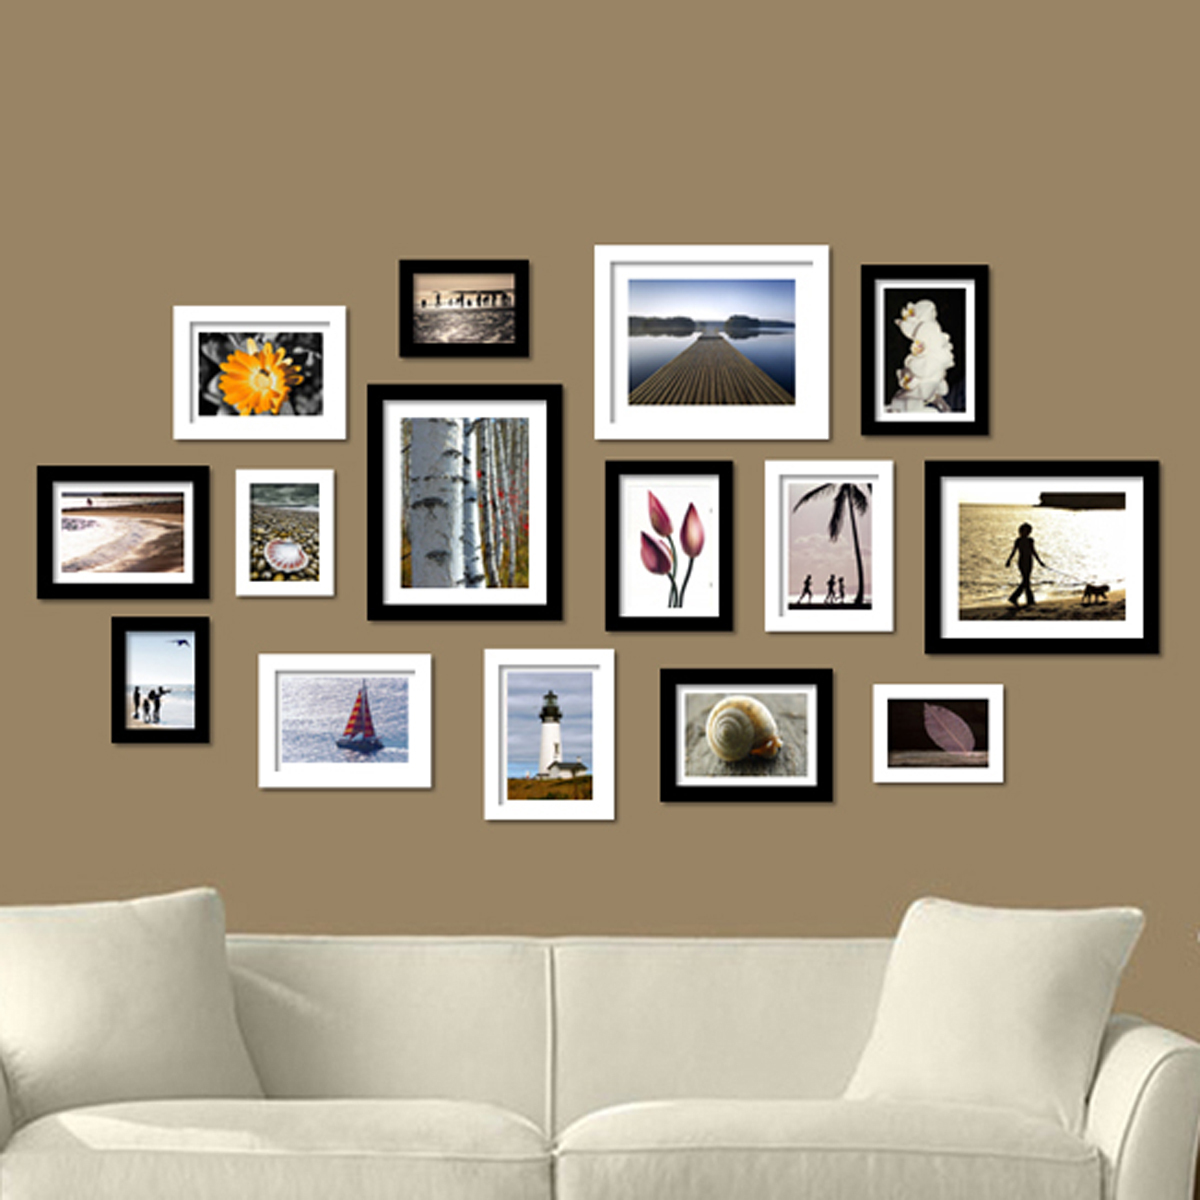 mur avec des photos amazing attrayant comment decorer un mur avec des cadres choses que vous. Black Bedroom Furniture Sets. Home Design Ideas